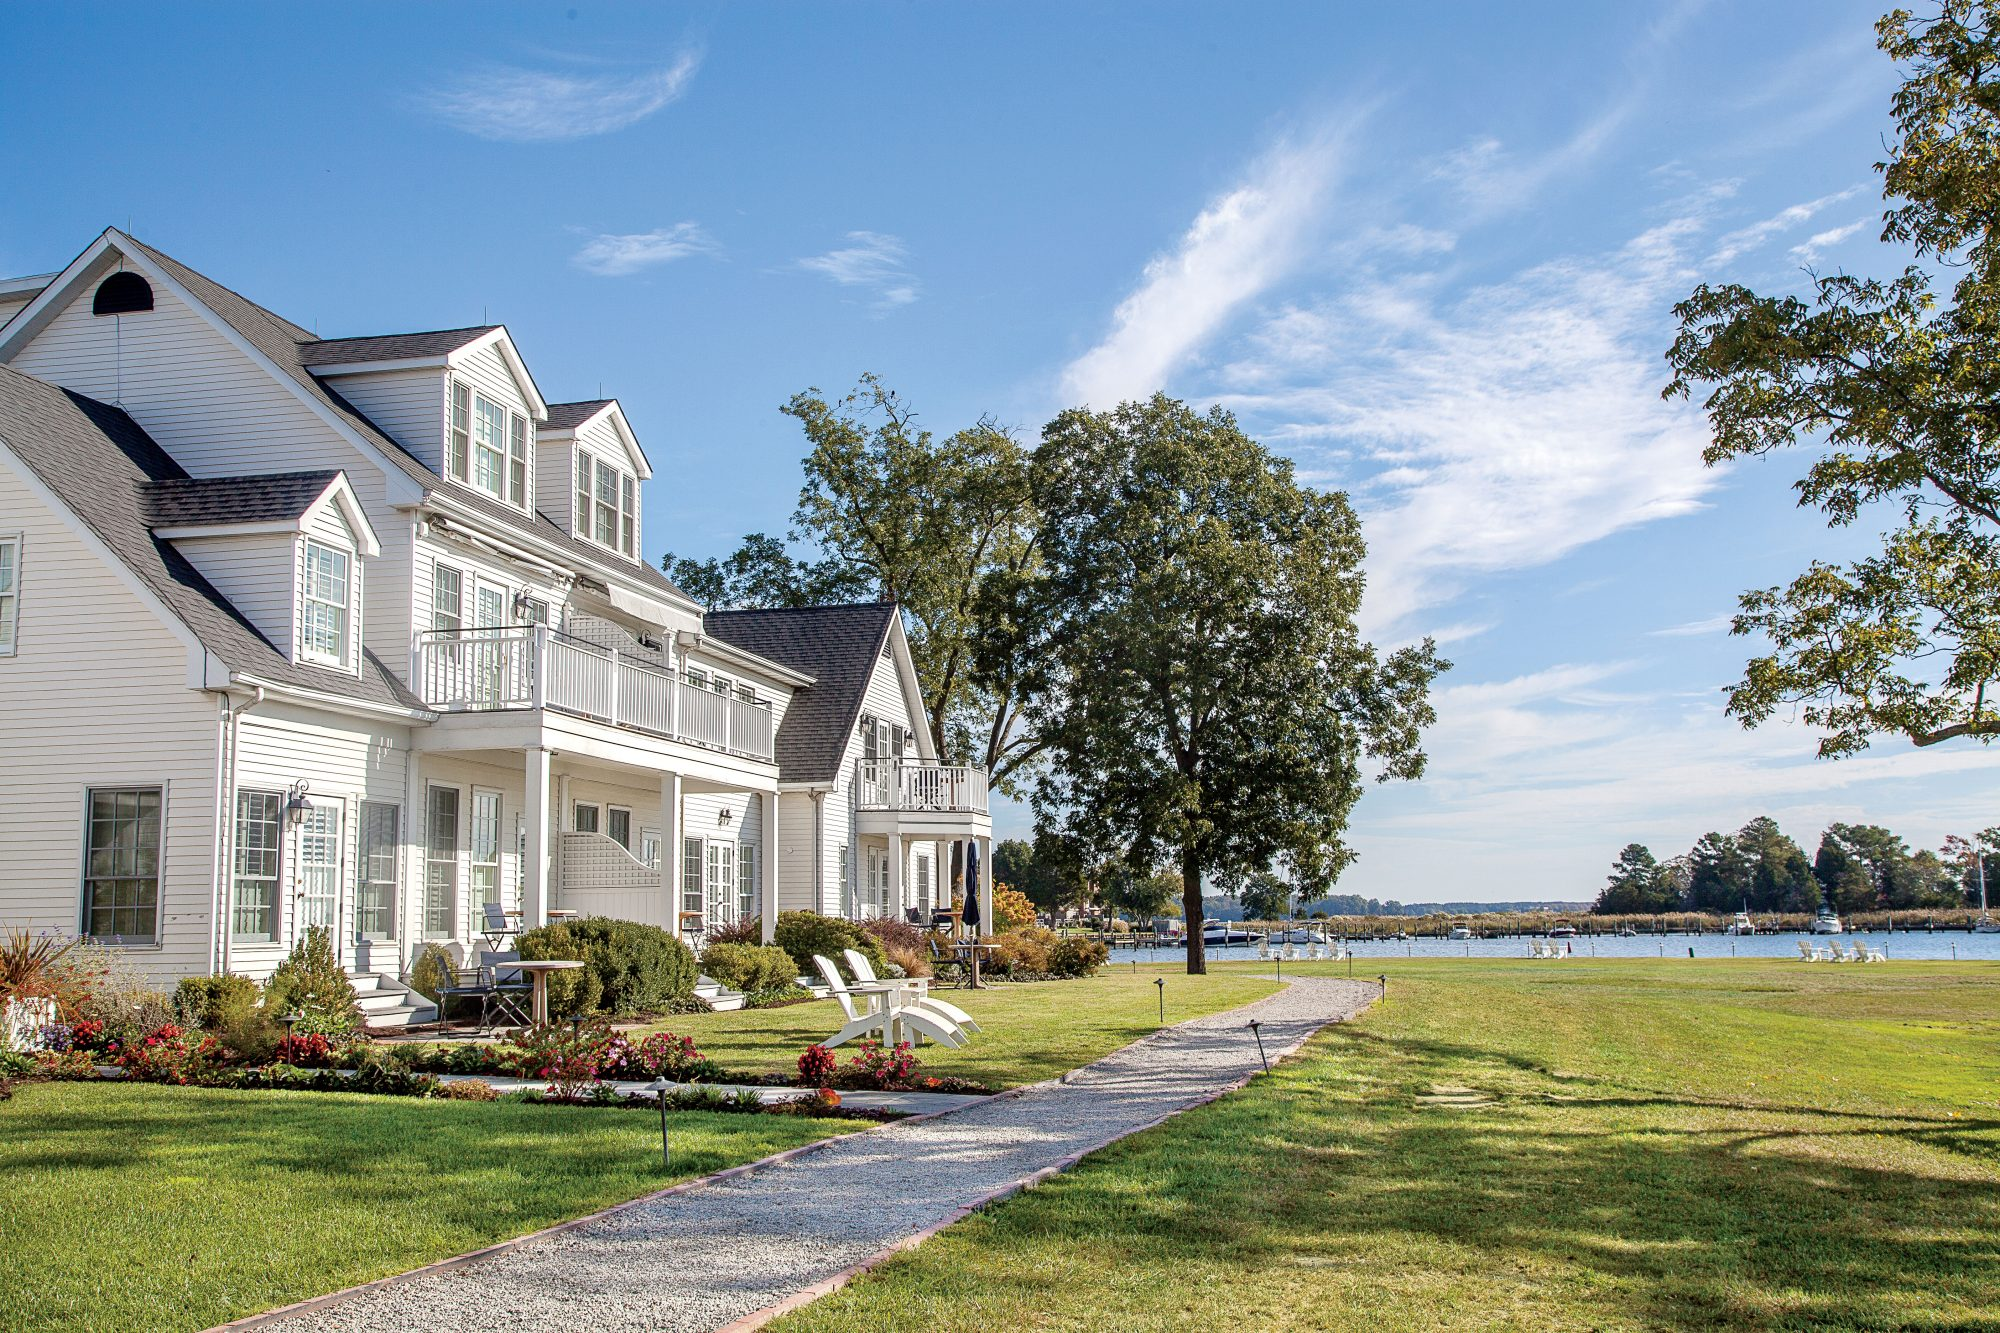 The Inn at Perry Cabin by Belmond in St. Michaels, Maryland